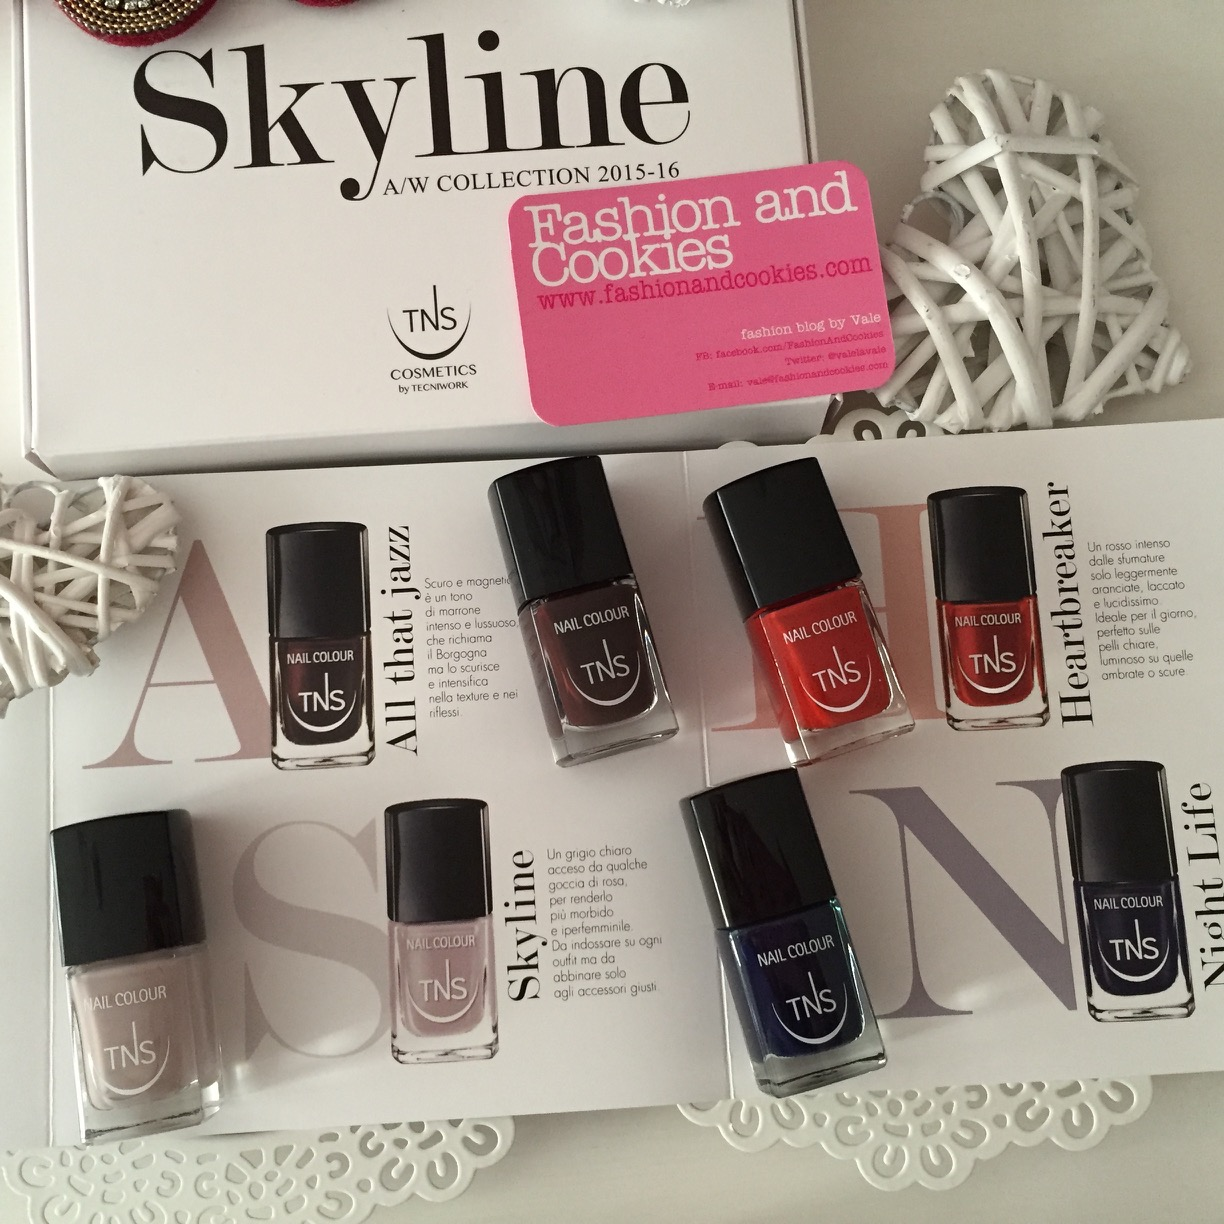 Skyline Collection, four nail polish shades by TNS Cosmetics on Fashion and Cookies beauty blog, beauty blogger